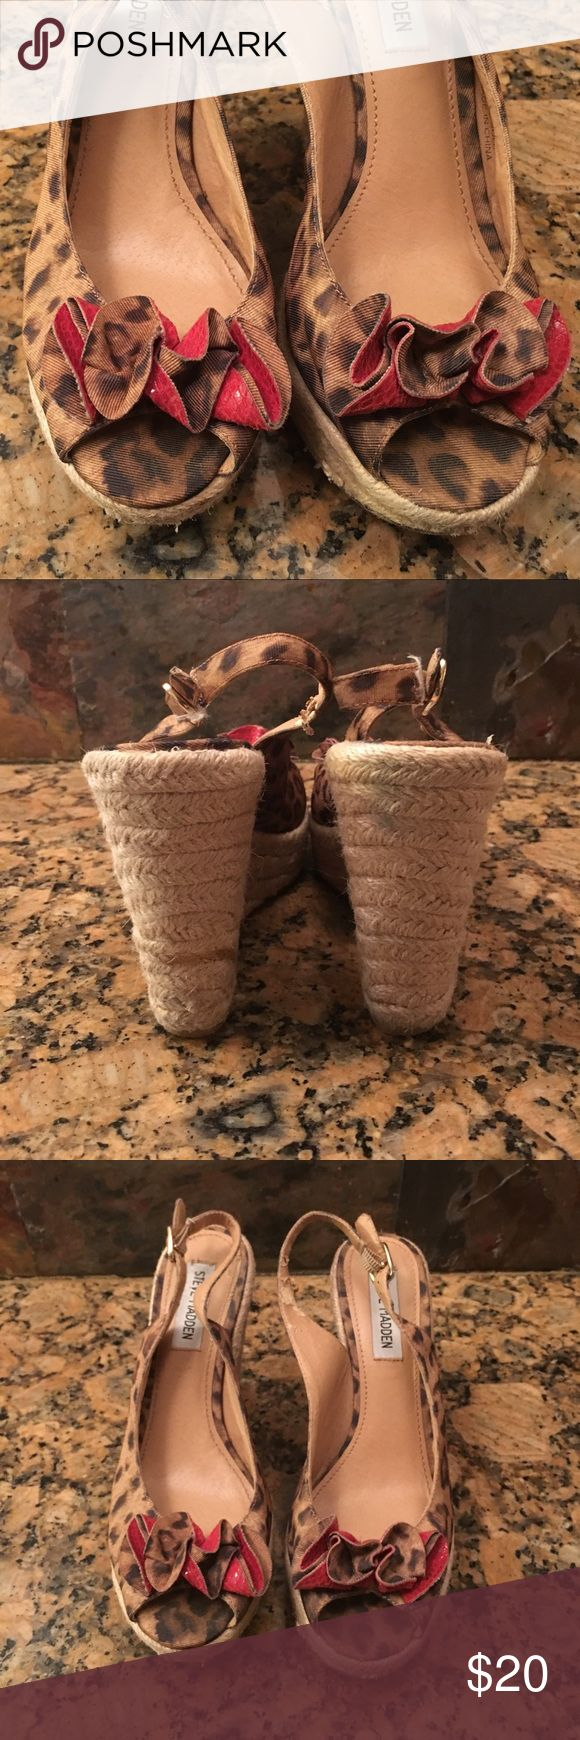 """Steve madden leopard wedges Steve madden """"Fauntain"""" leopard wedges with red floral """"bow"""". Wedge height 5 inches. Steve Madden Shoes Wedges"""